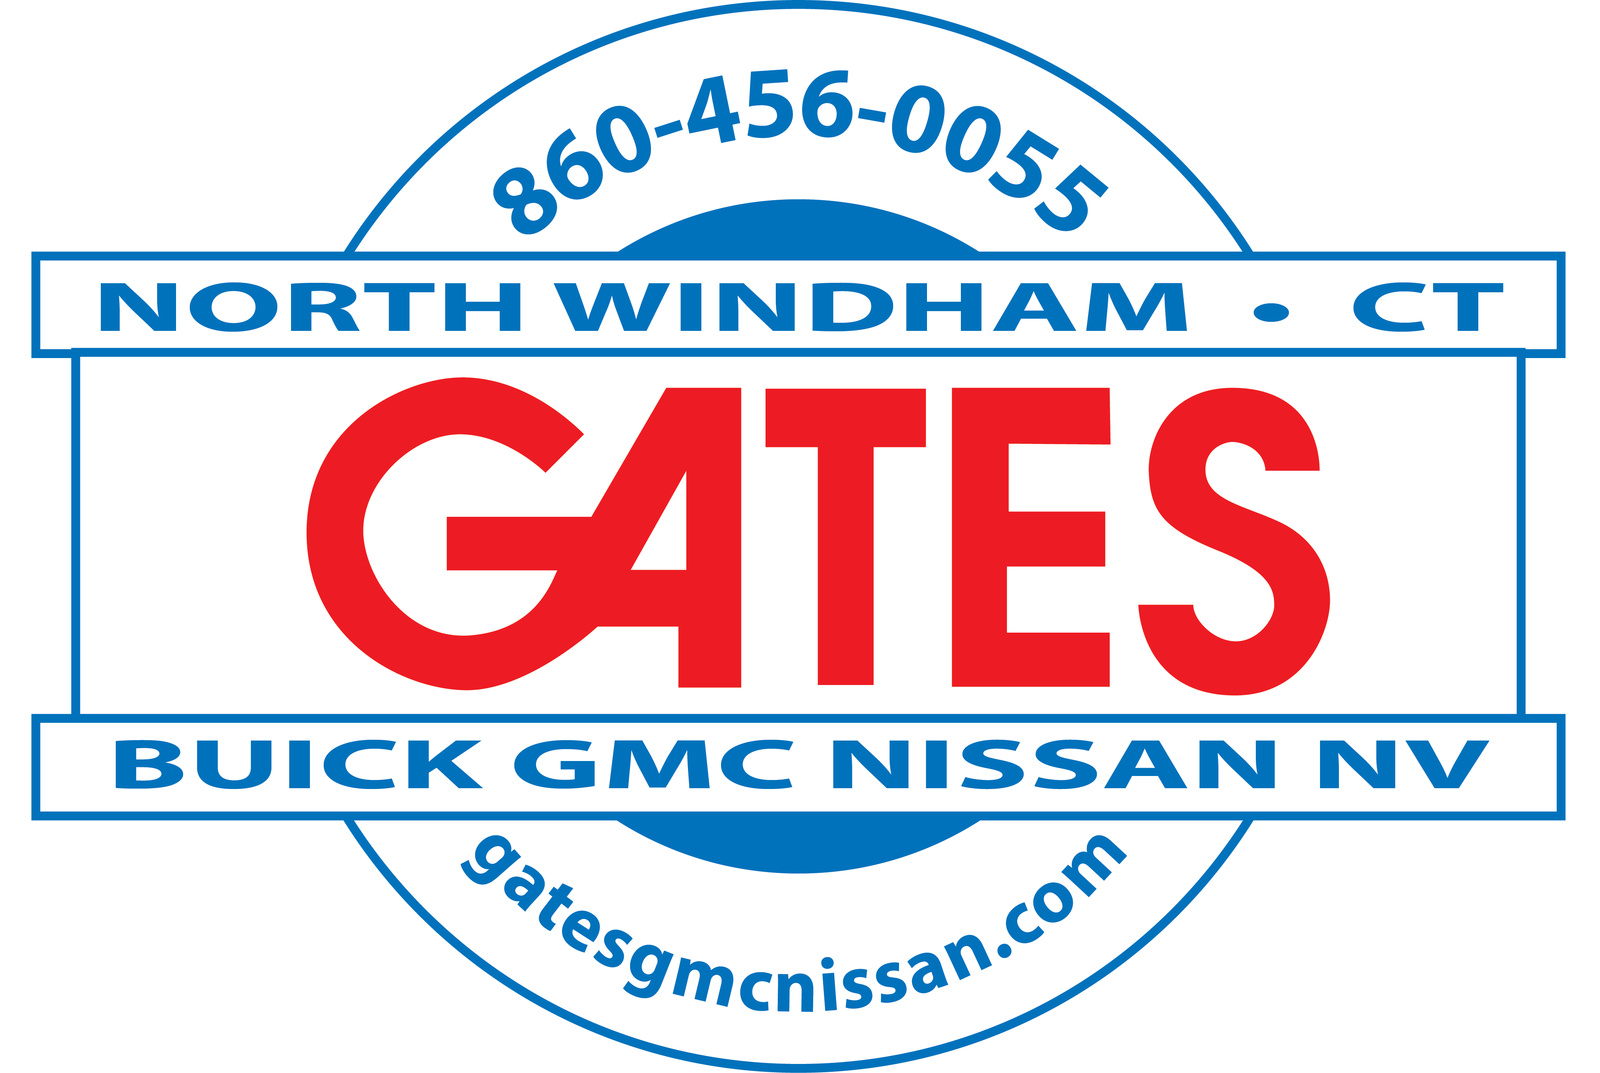 Honda Dealers In Ct >> Gates GMC Buick Nissan - North Windham, CT: Read Consumer ...